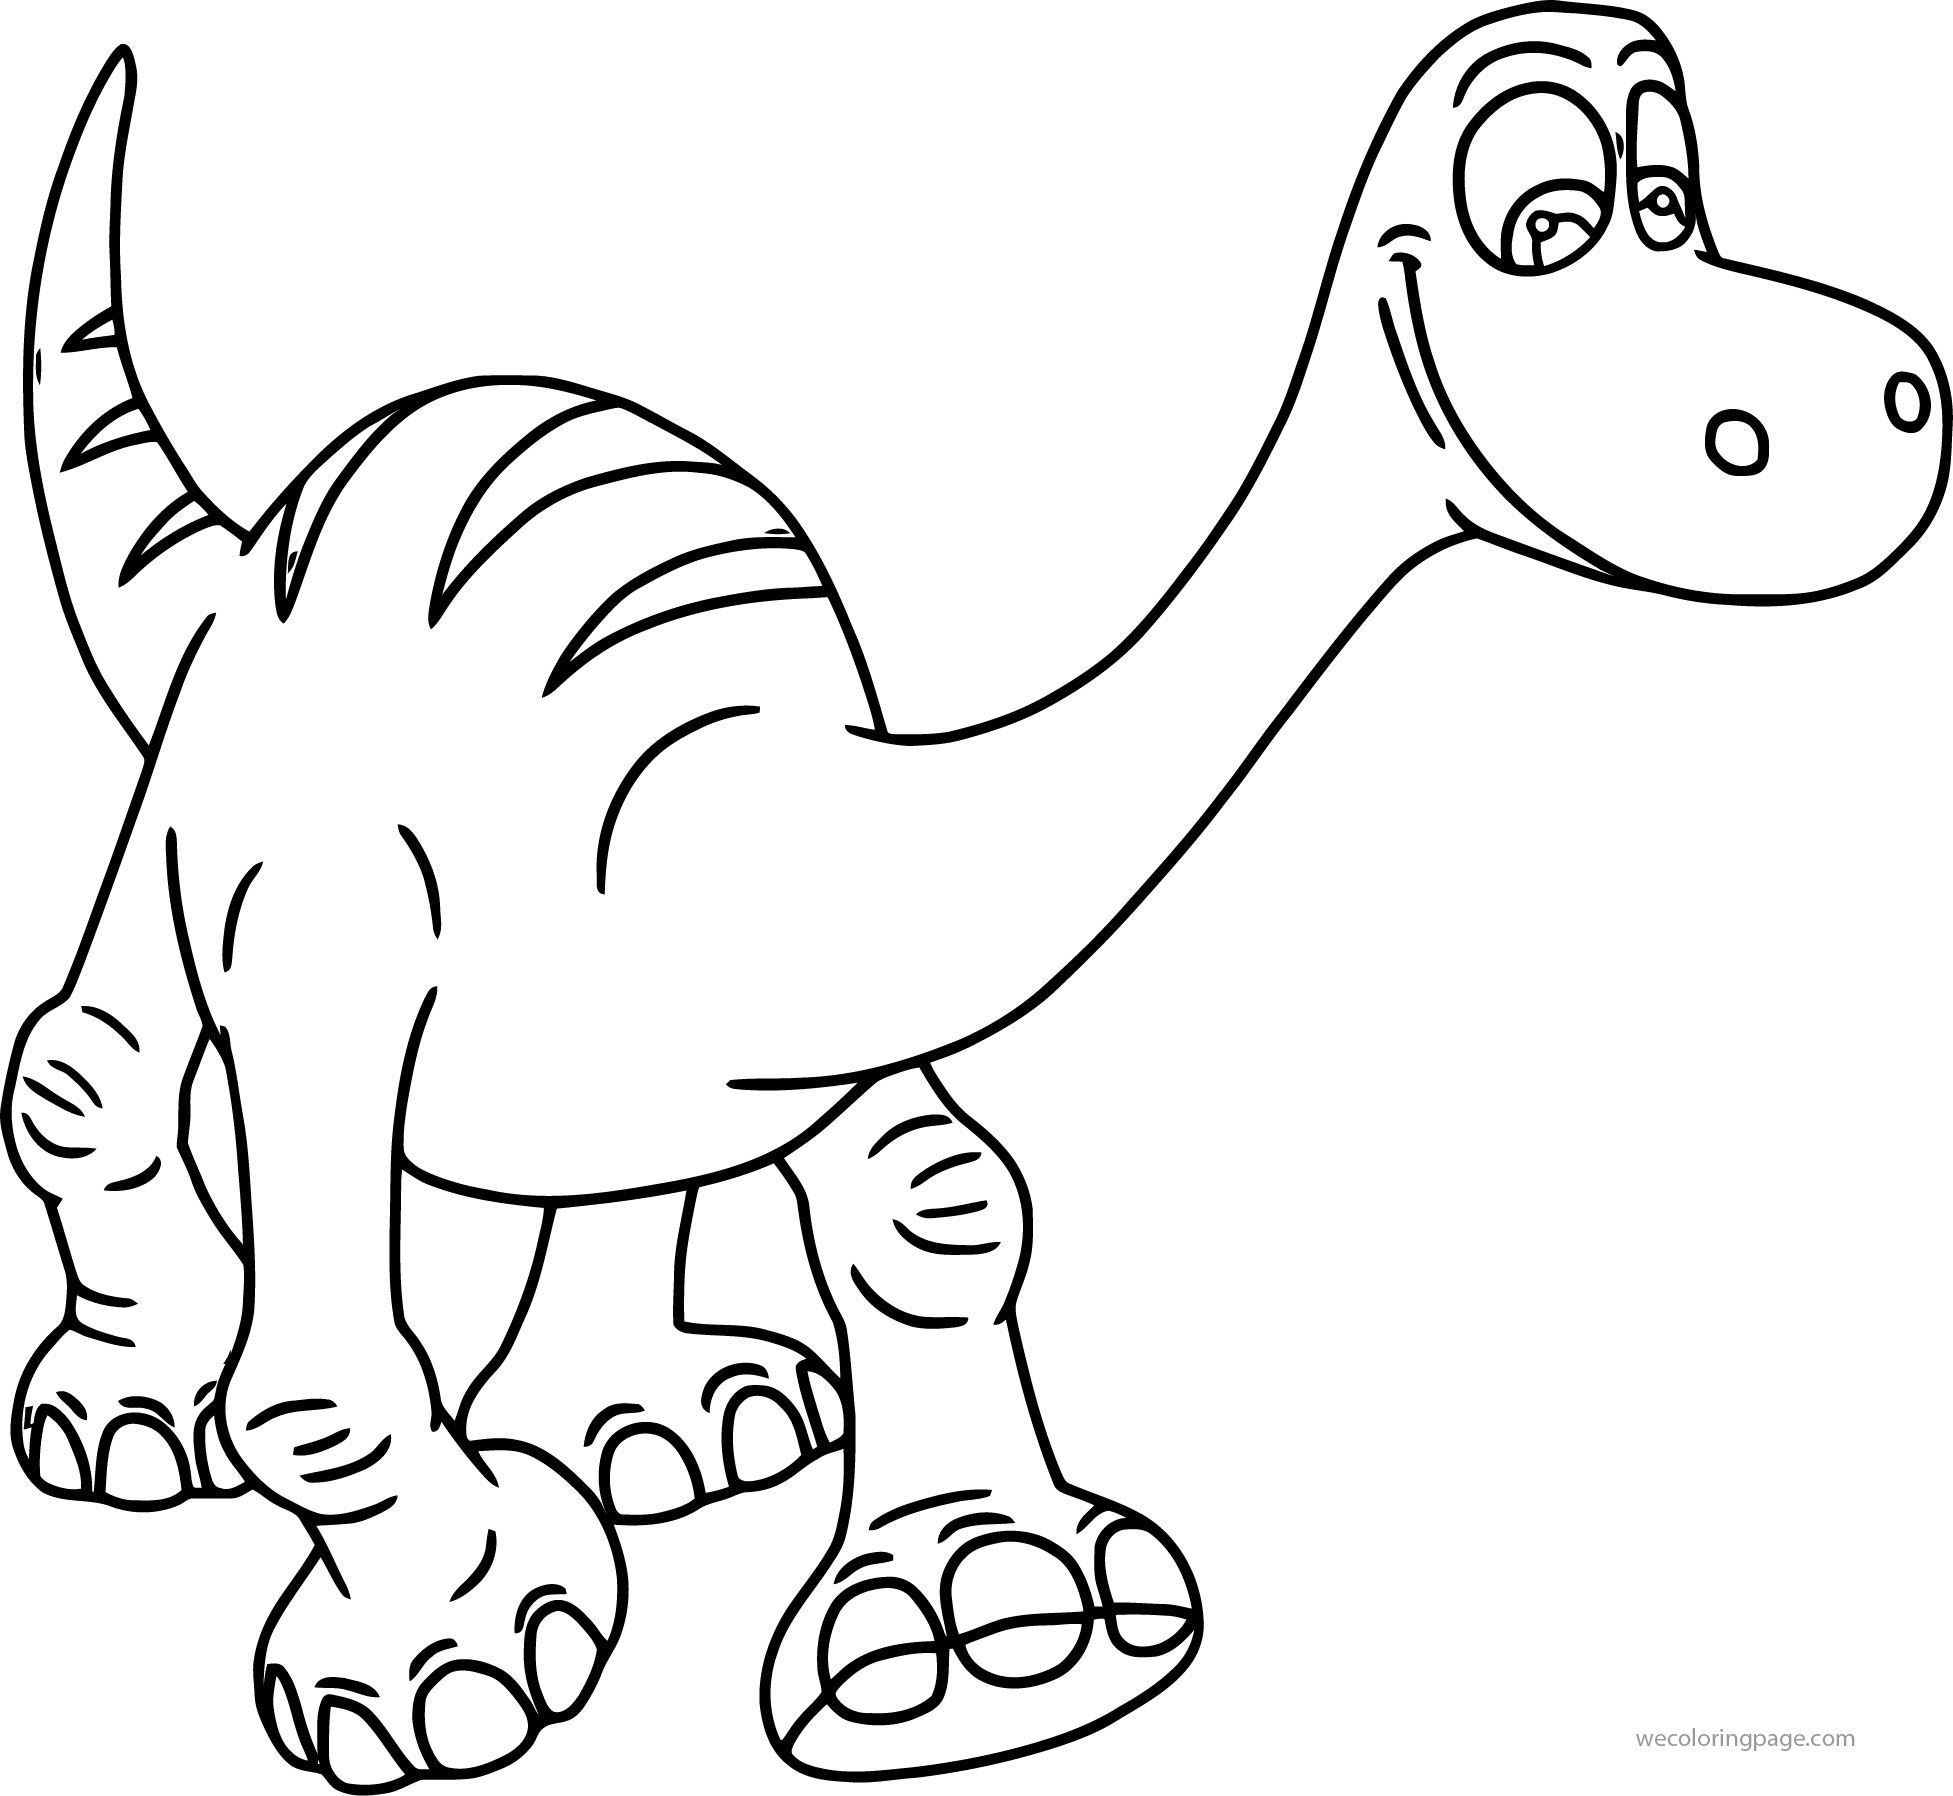 The Good Dinosaur Disney Coloring Pages Desenhos Tapetes Festa